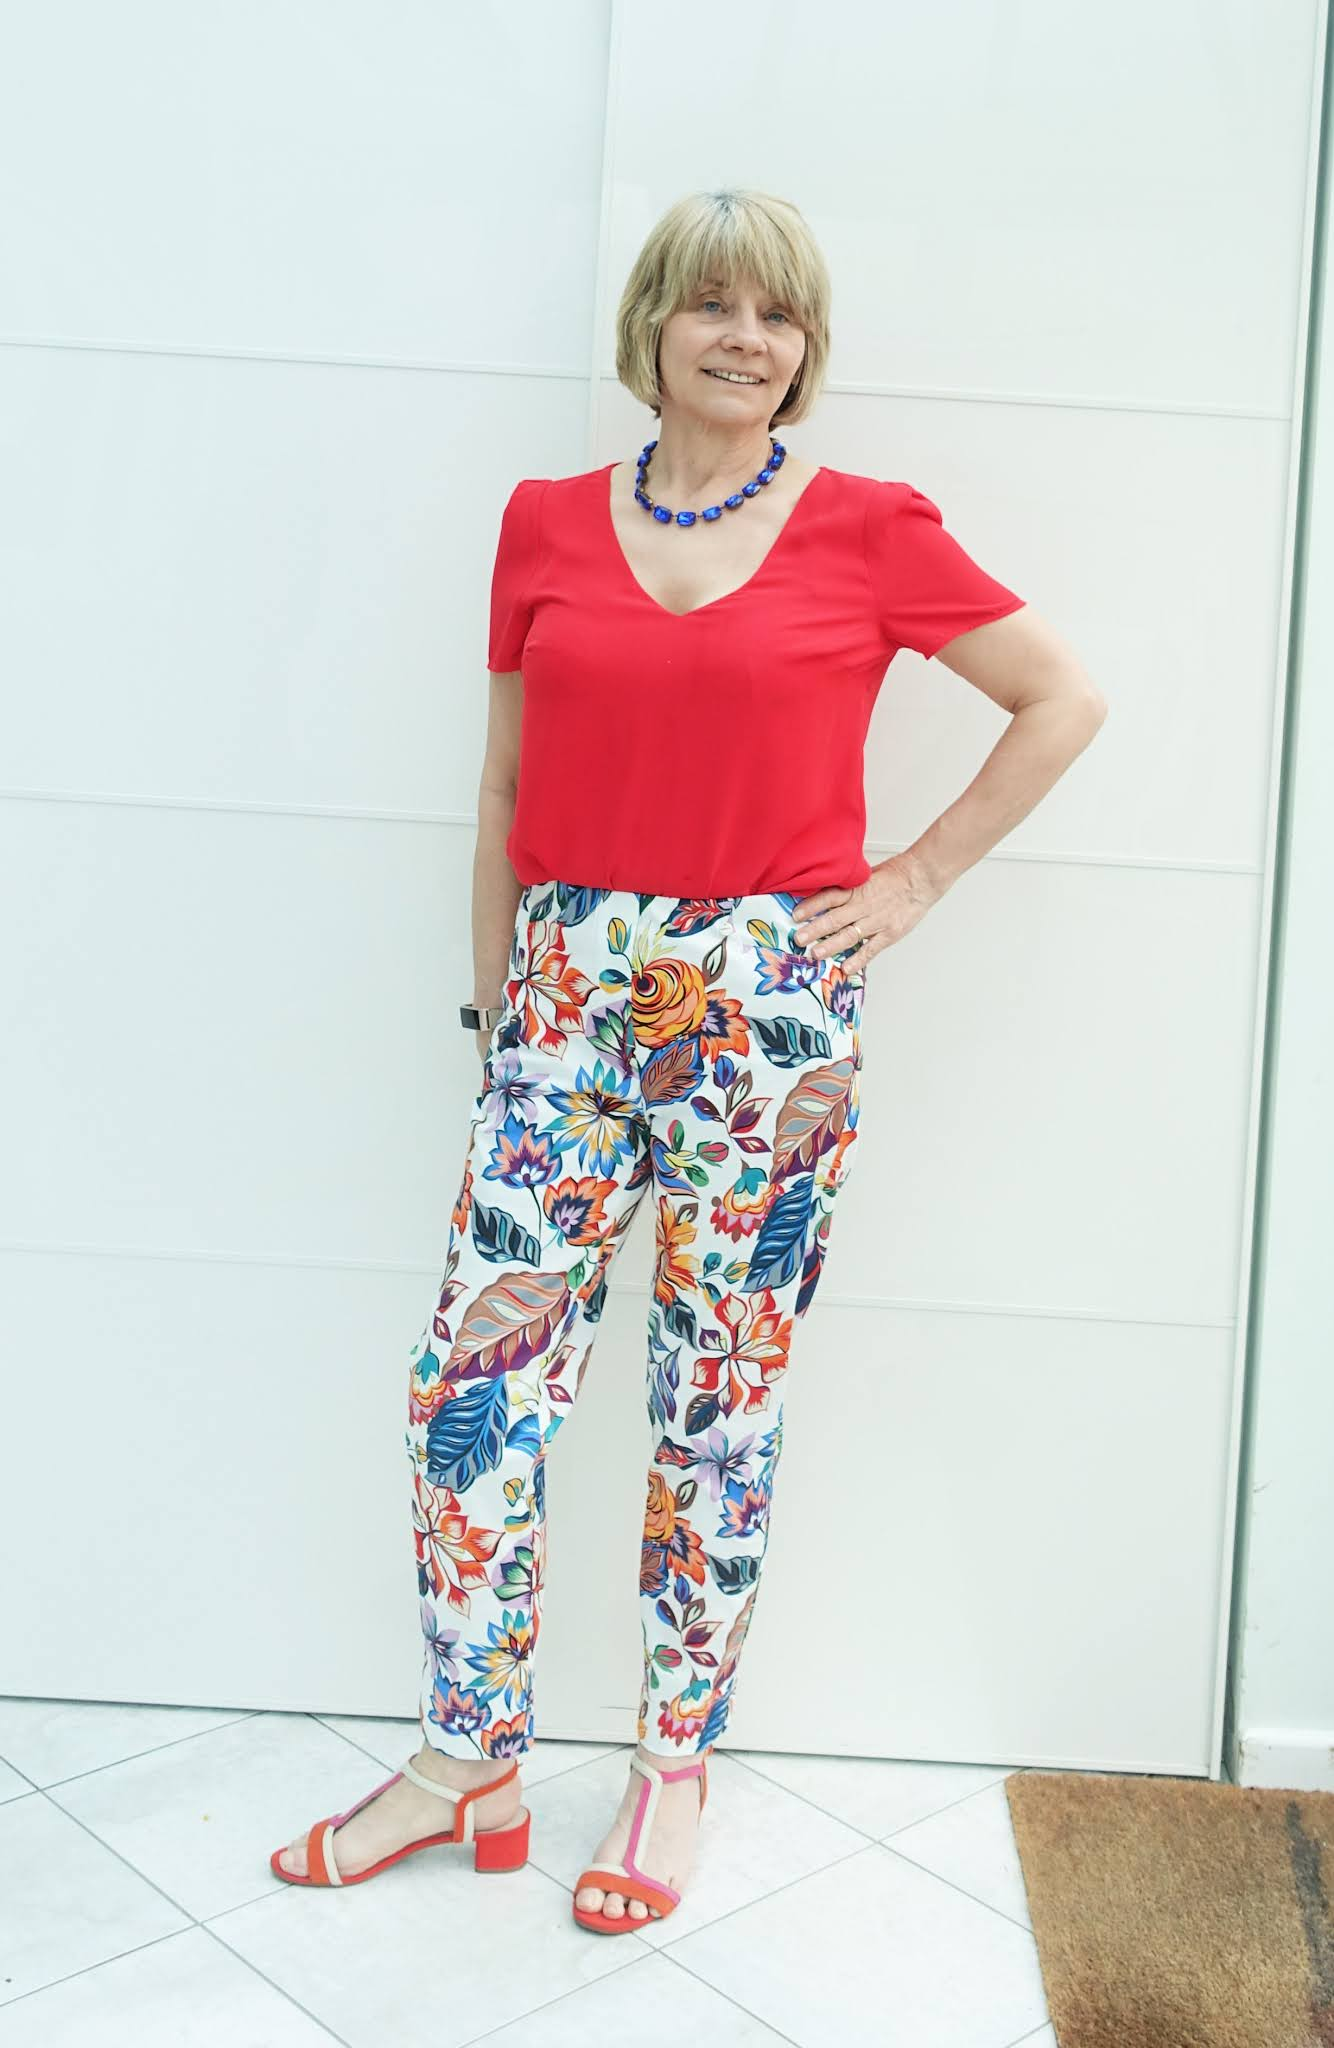 Trousers with a botanical print paired with a red top and sandals by style blogger Is This Mutton